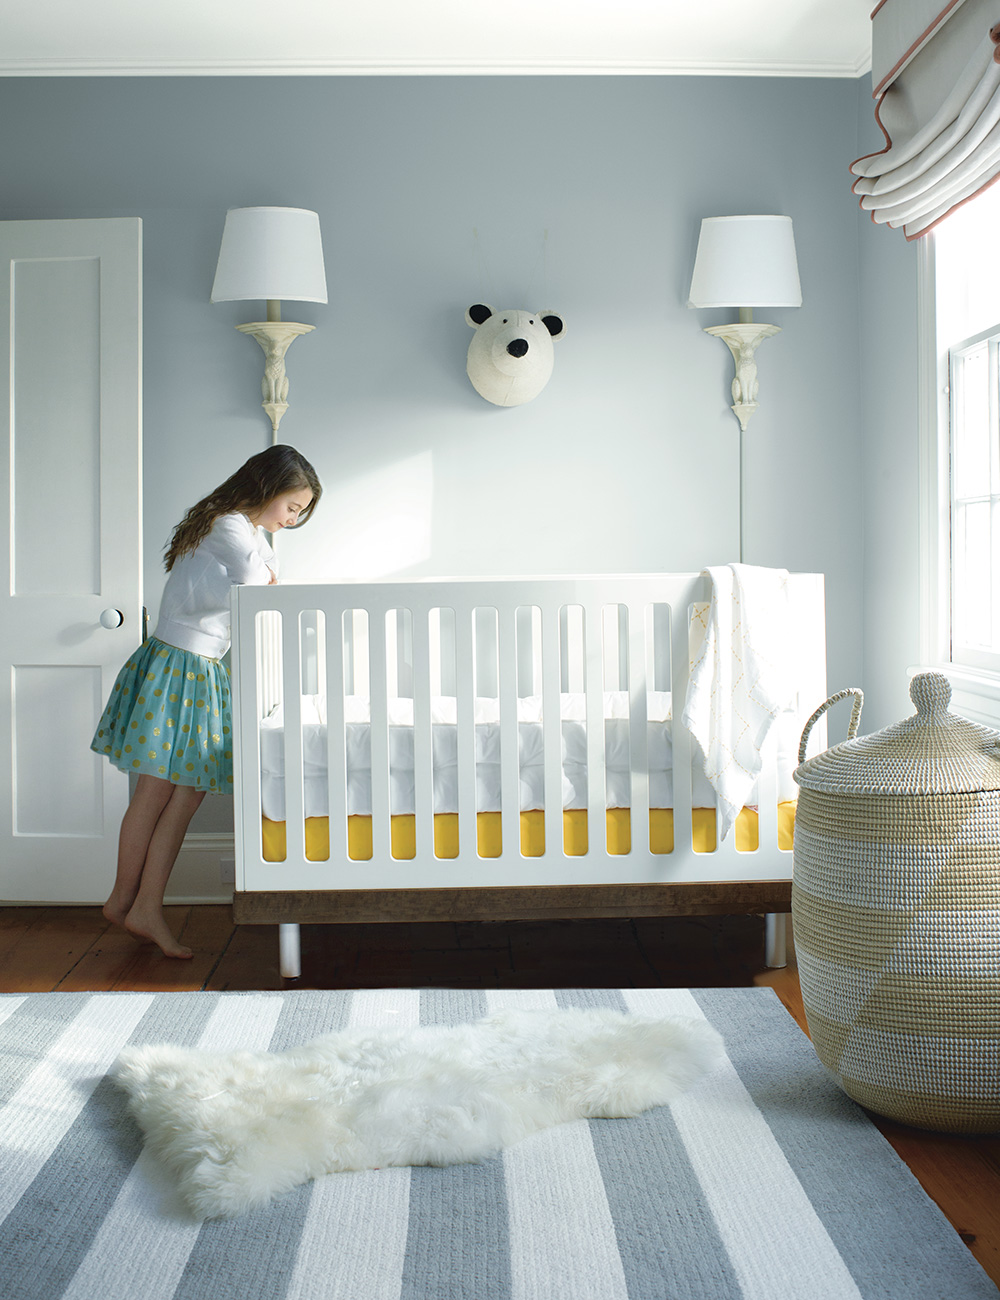 Soothing paint tones - You can't beat a splash of calming colour to relax your baby. We love Benjamin Moore's Bunny Gray paint – part of the Colour Preview collection, this bold, saturated choice will bring any child's space to life, creating a pure, extraordinary look. Plus, to keep your family safe, the Natura paint is emission-free and better for the environment, as well as asthma and allergy-friendly, without compromising on performance. To learn more, visit www.benjaminmoorepaint.co.uk